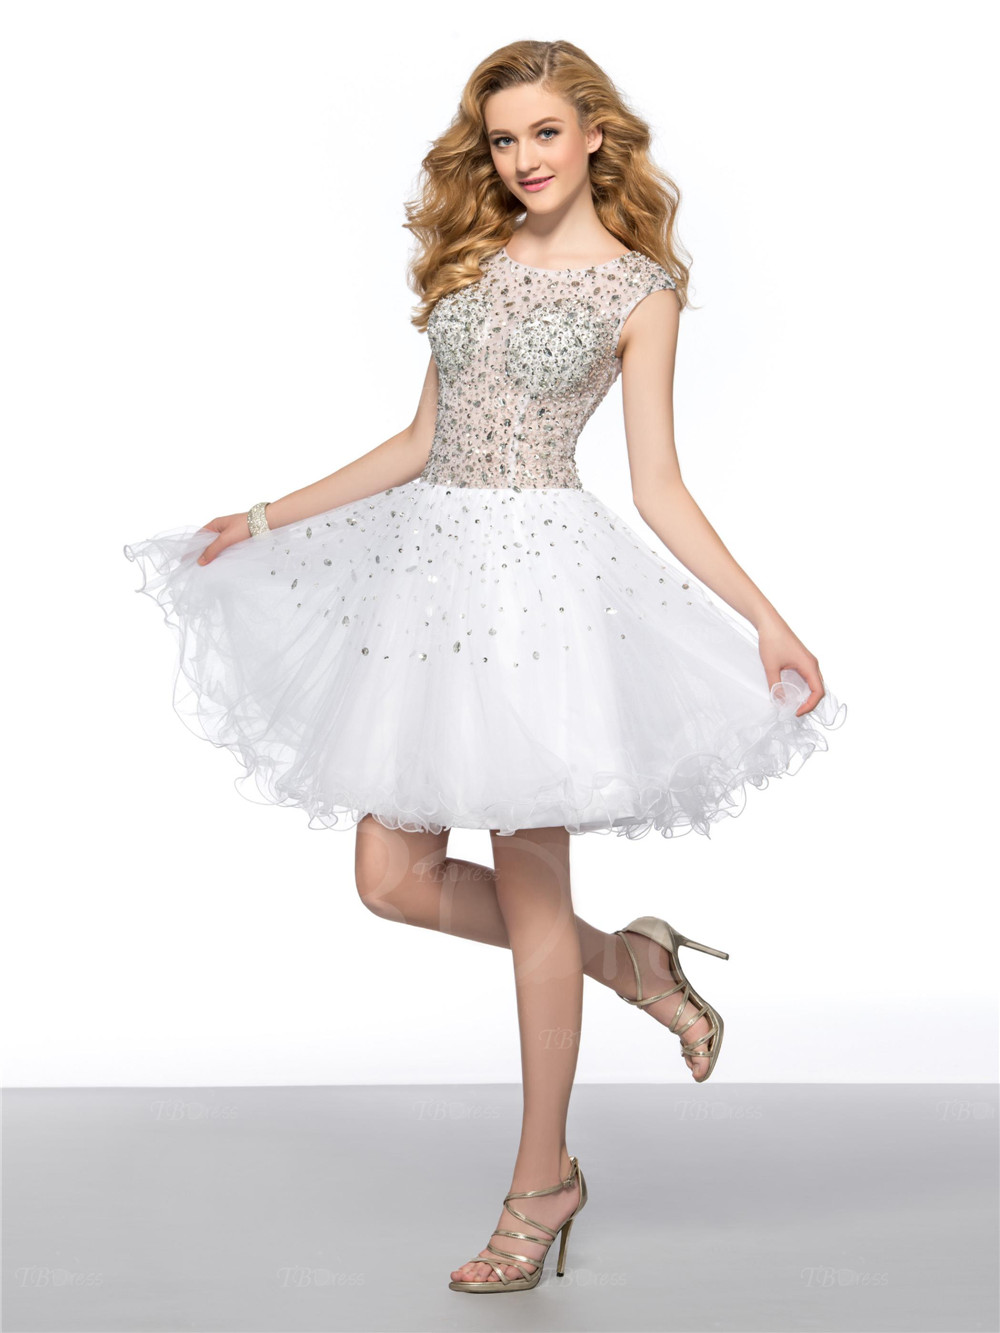 Popular White Cocktail Dresses for Prom-Buy Cheap White Cocktail ...